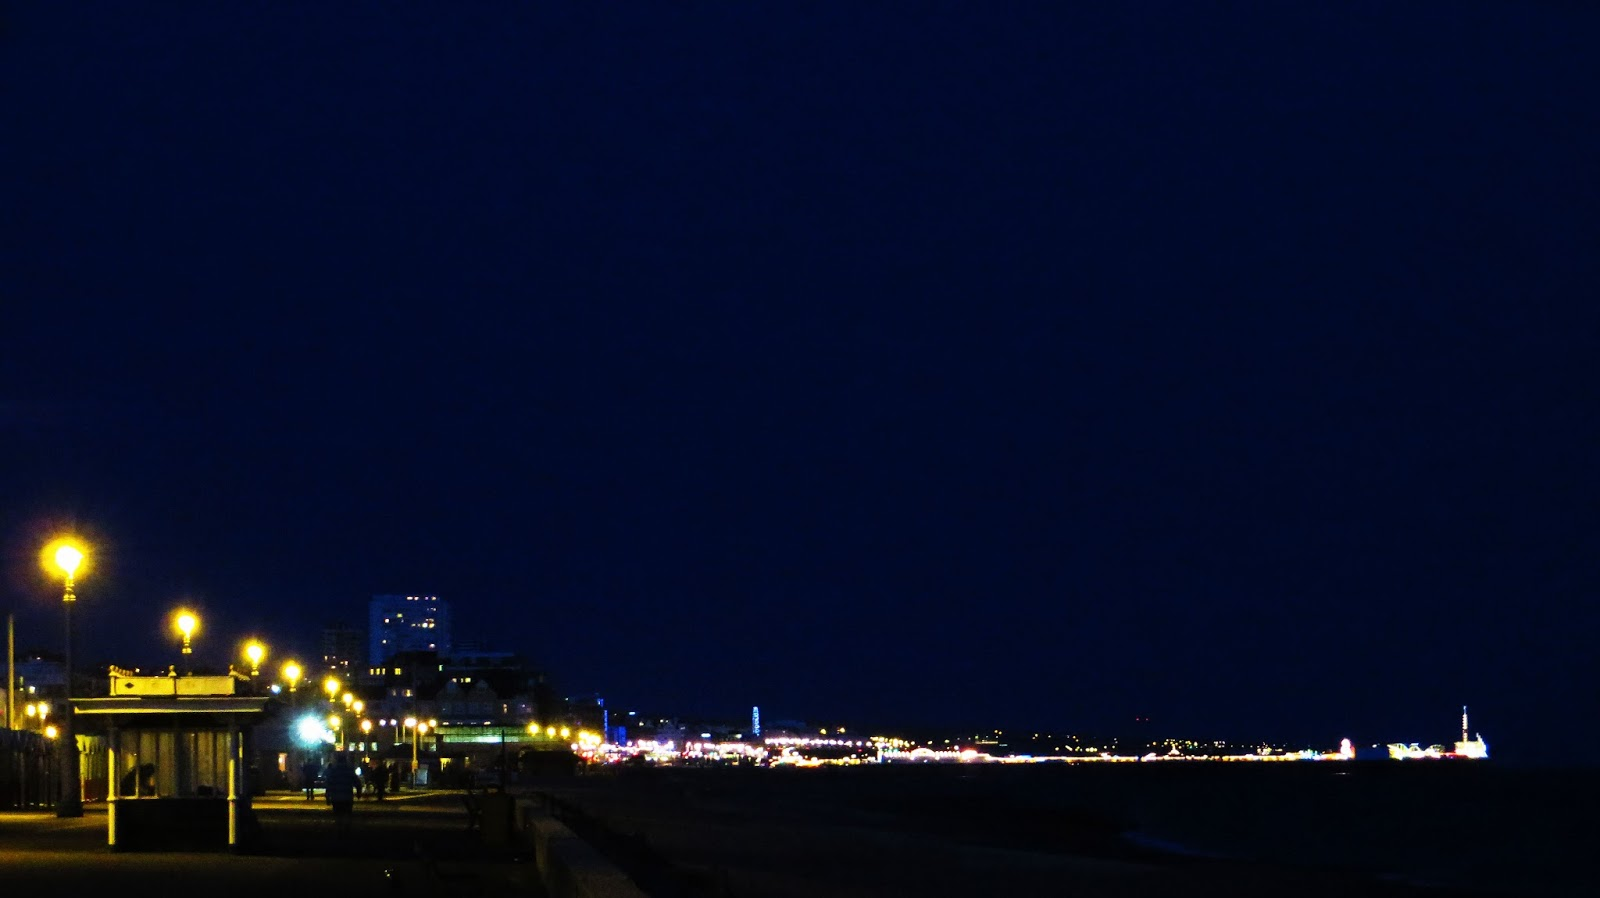 Brighton at night